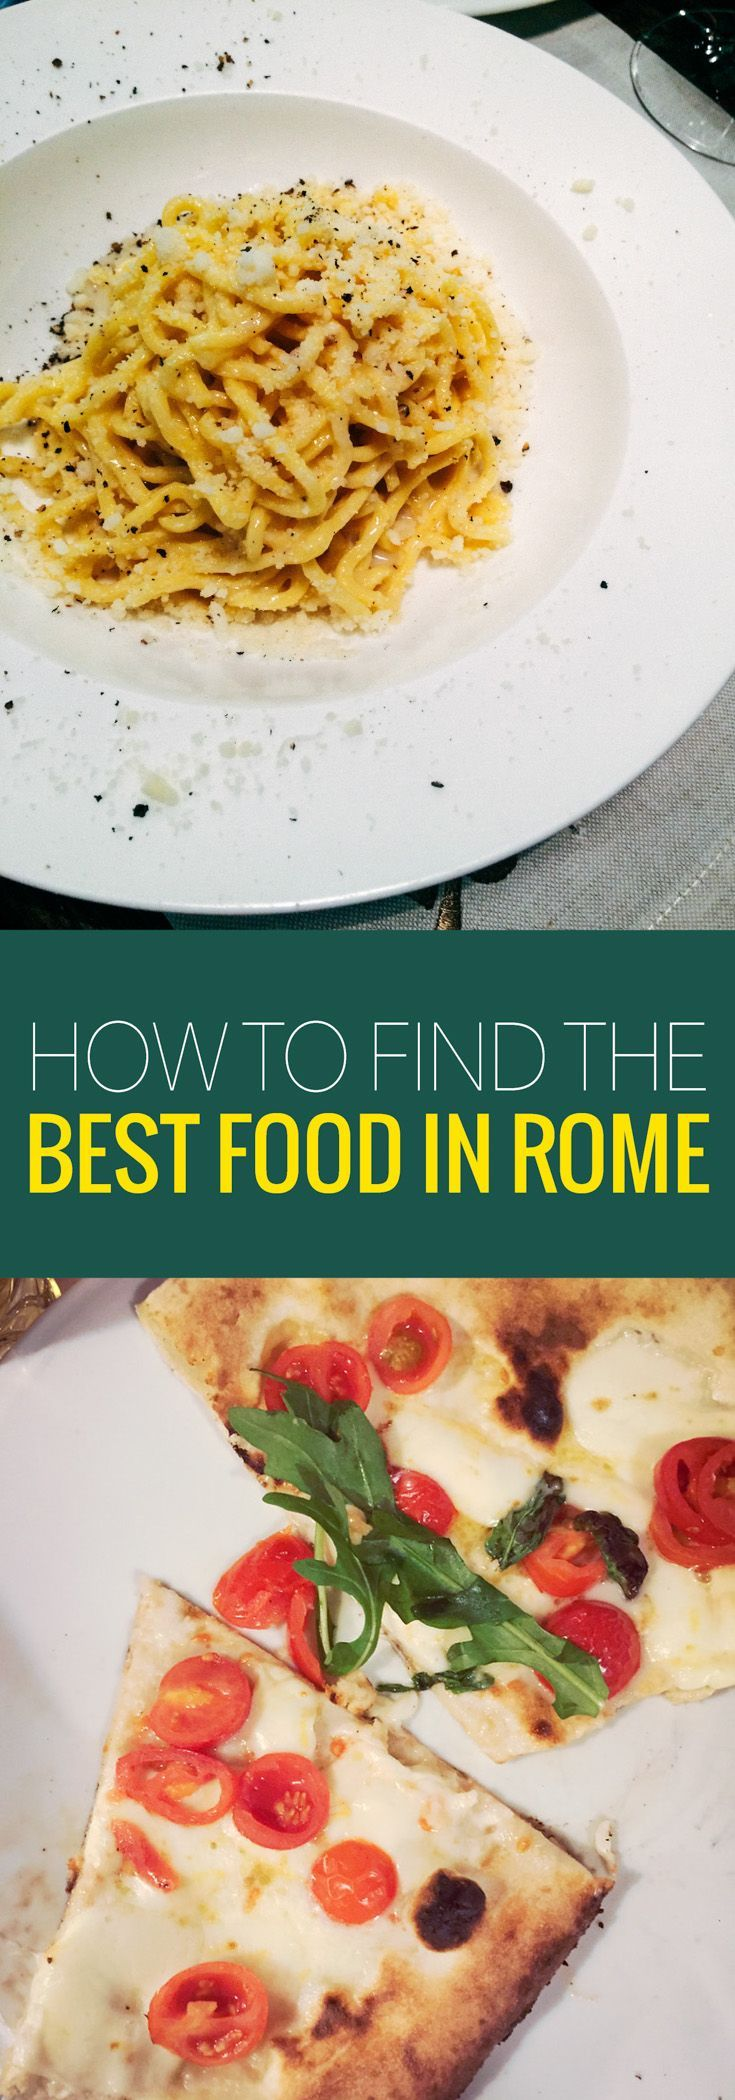 Learn where to find the best food in Rome with this Rome food tour by Walks of Italy. Highly recommended! ~ http://www.baconismagic.ca